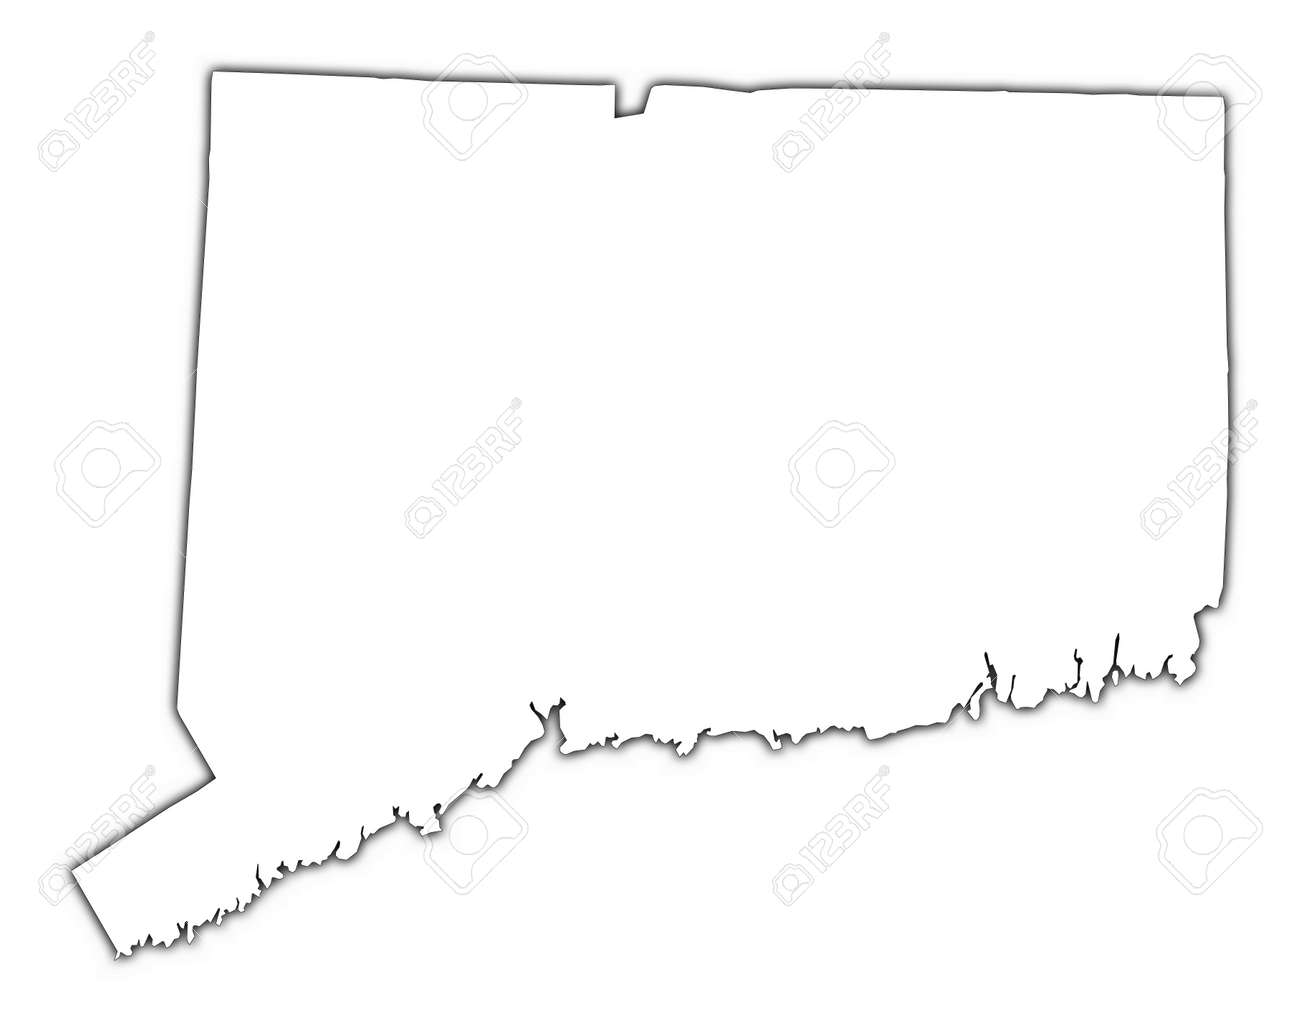 ConnecticutUSA Outline Map With Shadow Detailed Mercator - Connecticut map usa